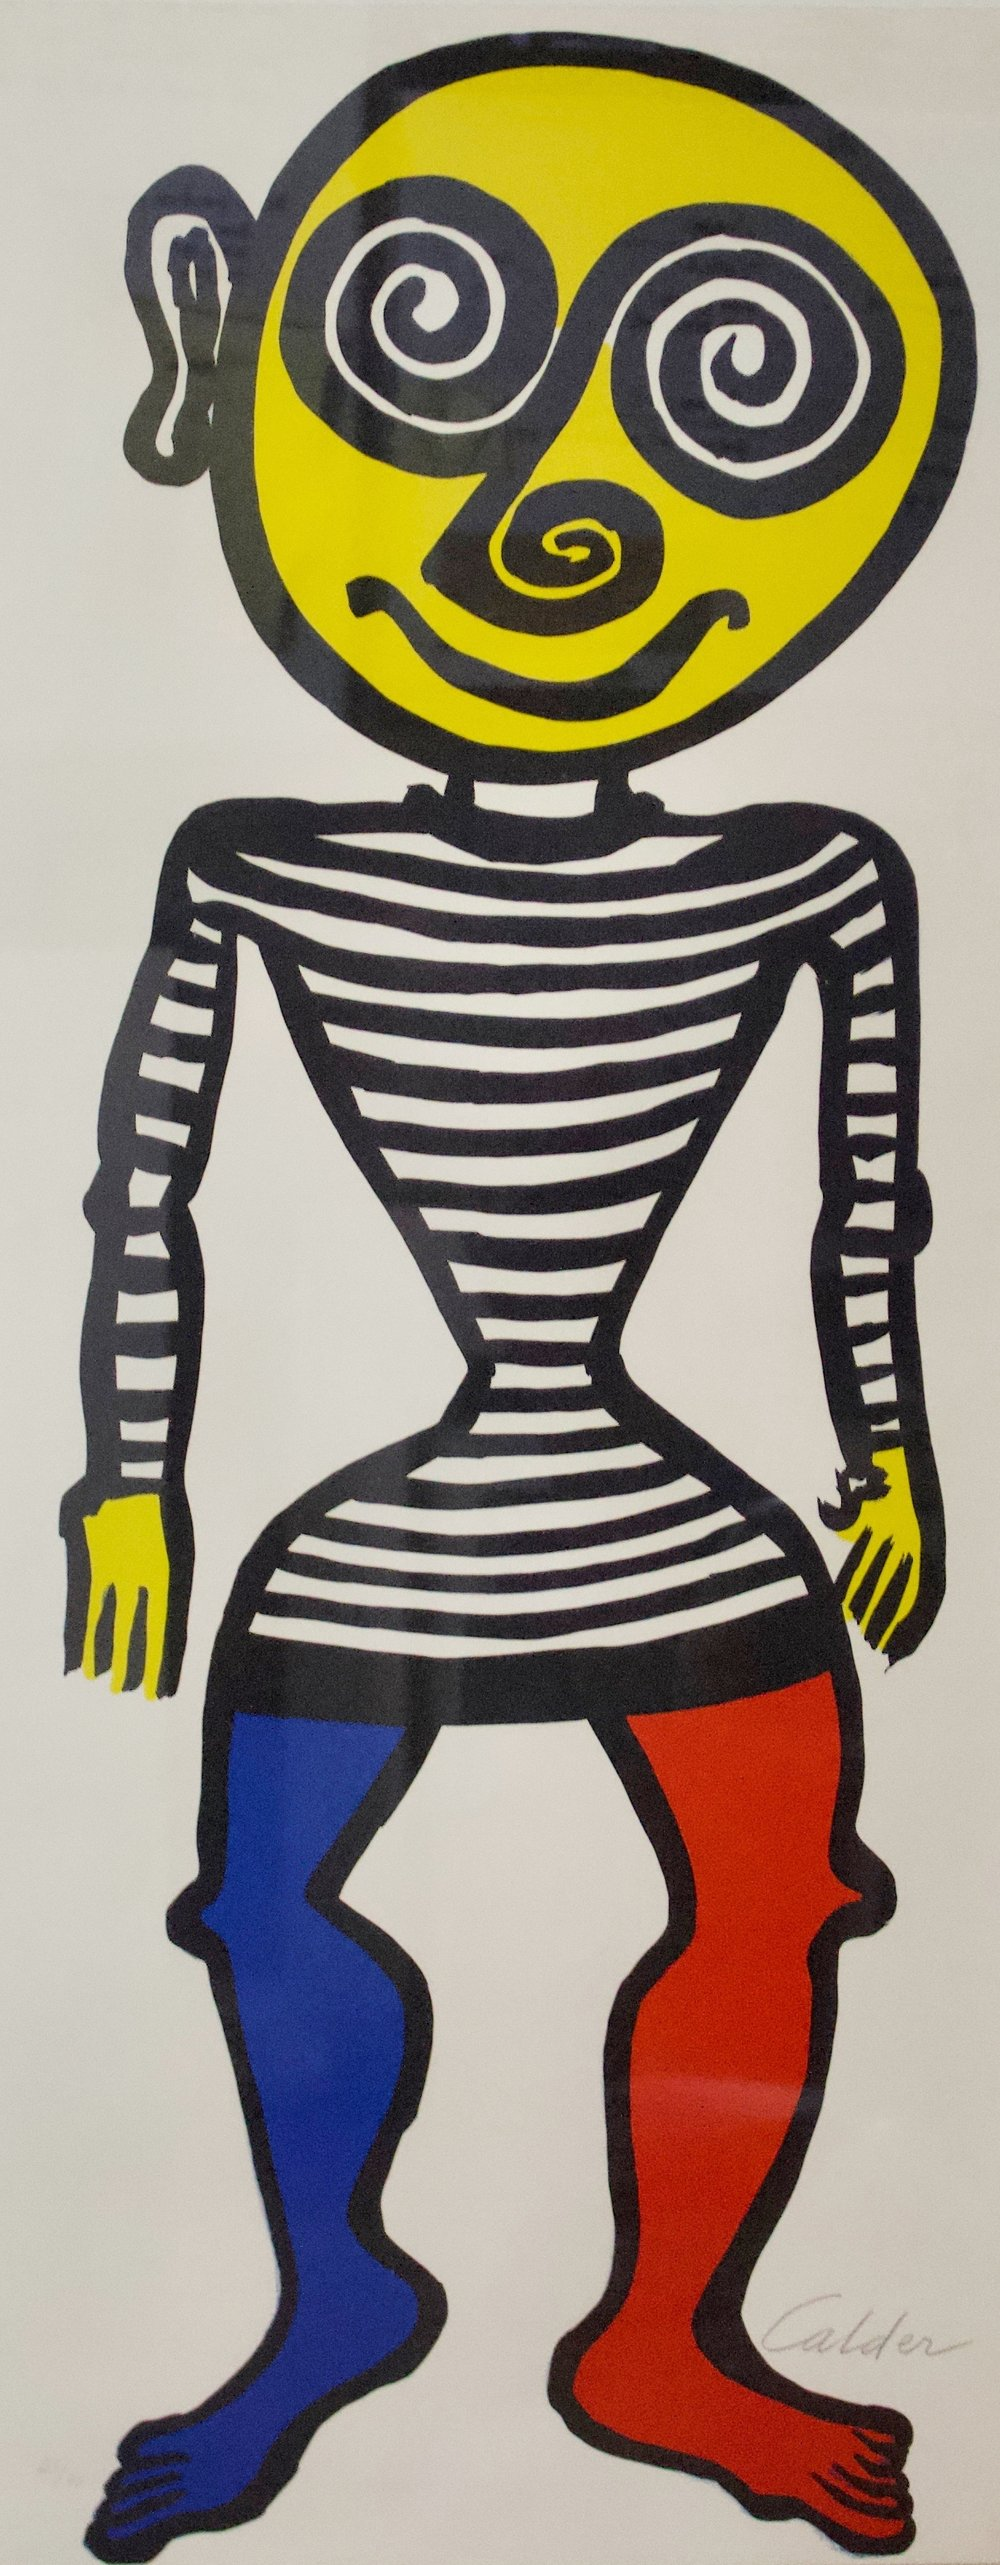 "Alexander Calder  (1898-1976)  Puppet Man, 1960  Color Lithograph Printed on Cream White Arches  Framed: 49.25"" x 25.25""  CGL0030"